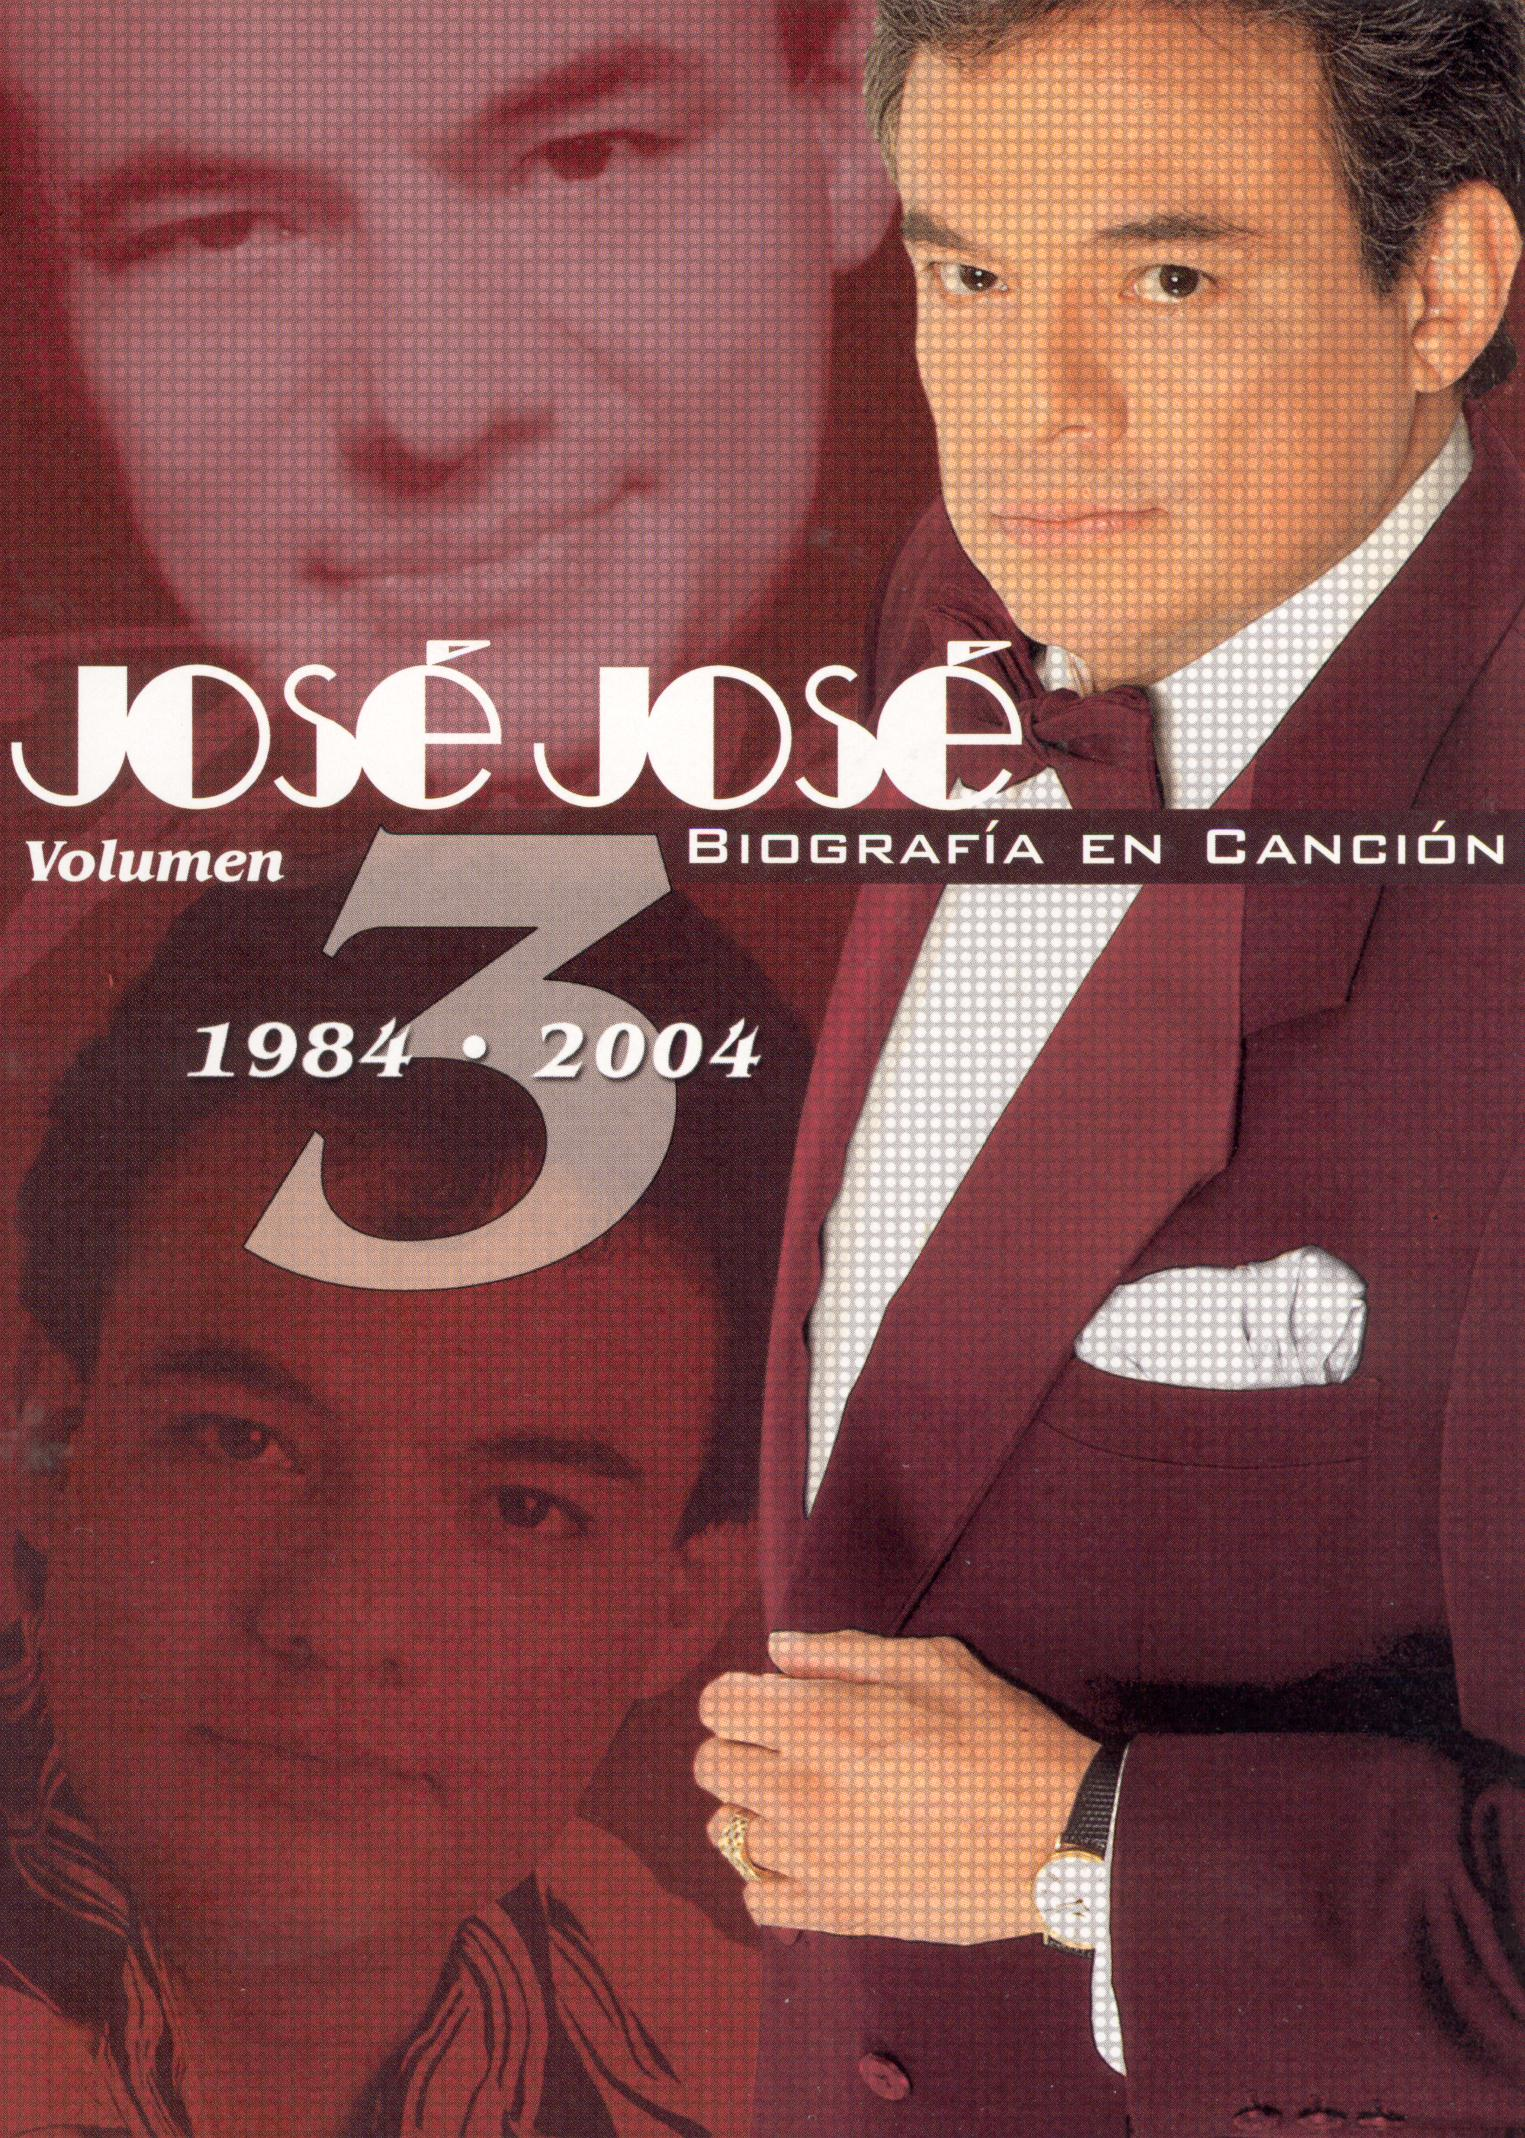 José José: Biografia En Cancion, Vol. 3